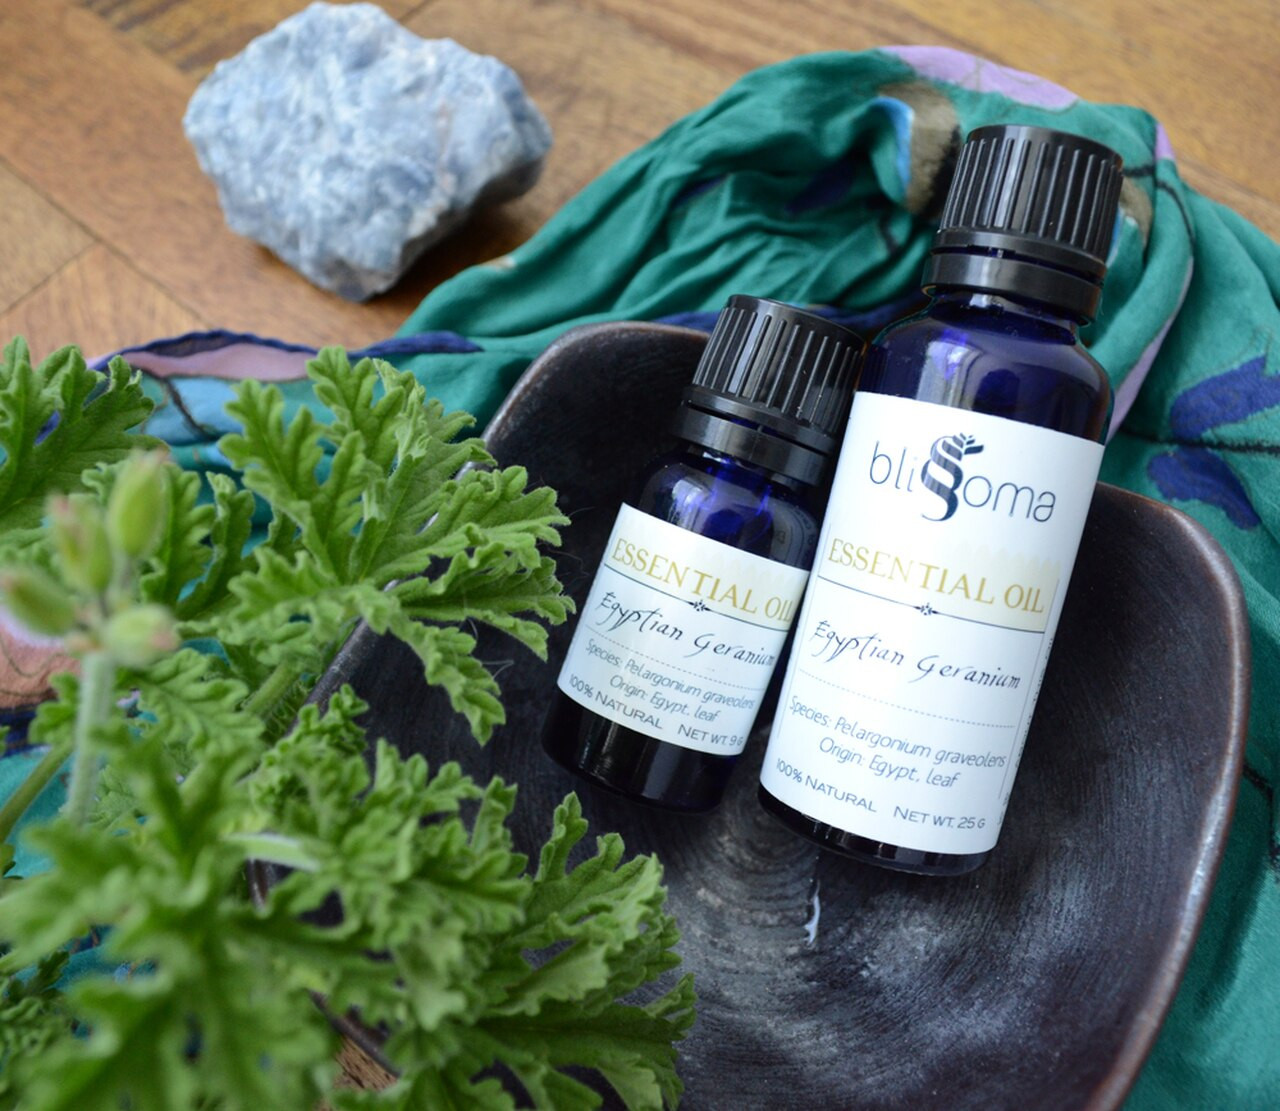 Essential oil bug repellent - a DIY blend recipe and dilution rates for natural bug spray to deter insects